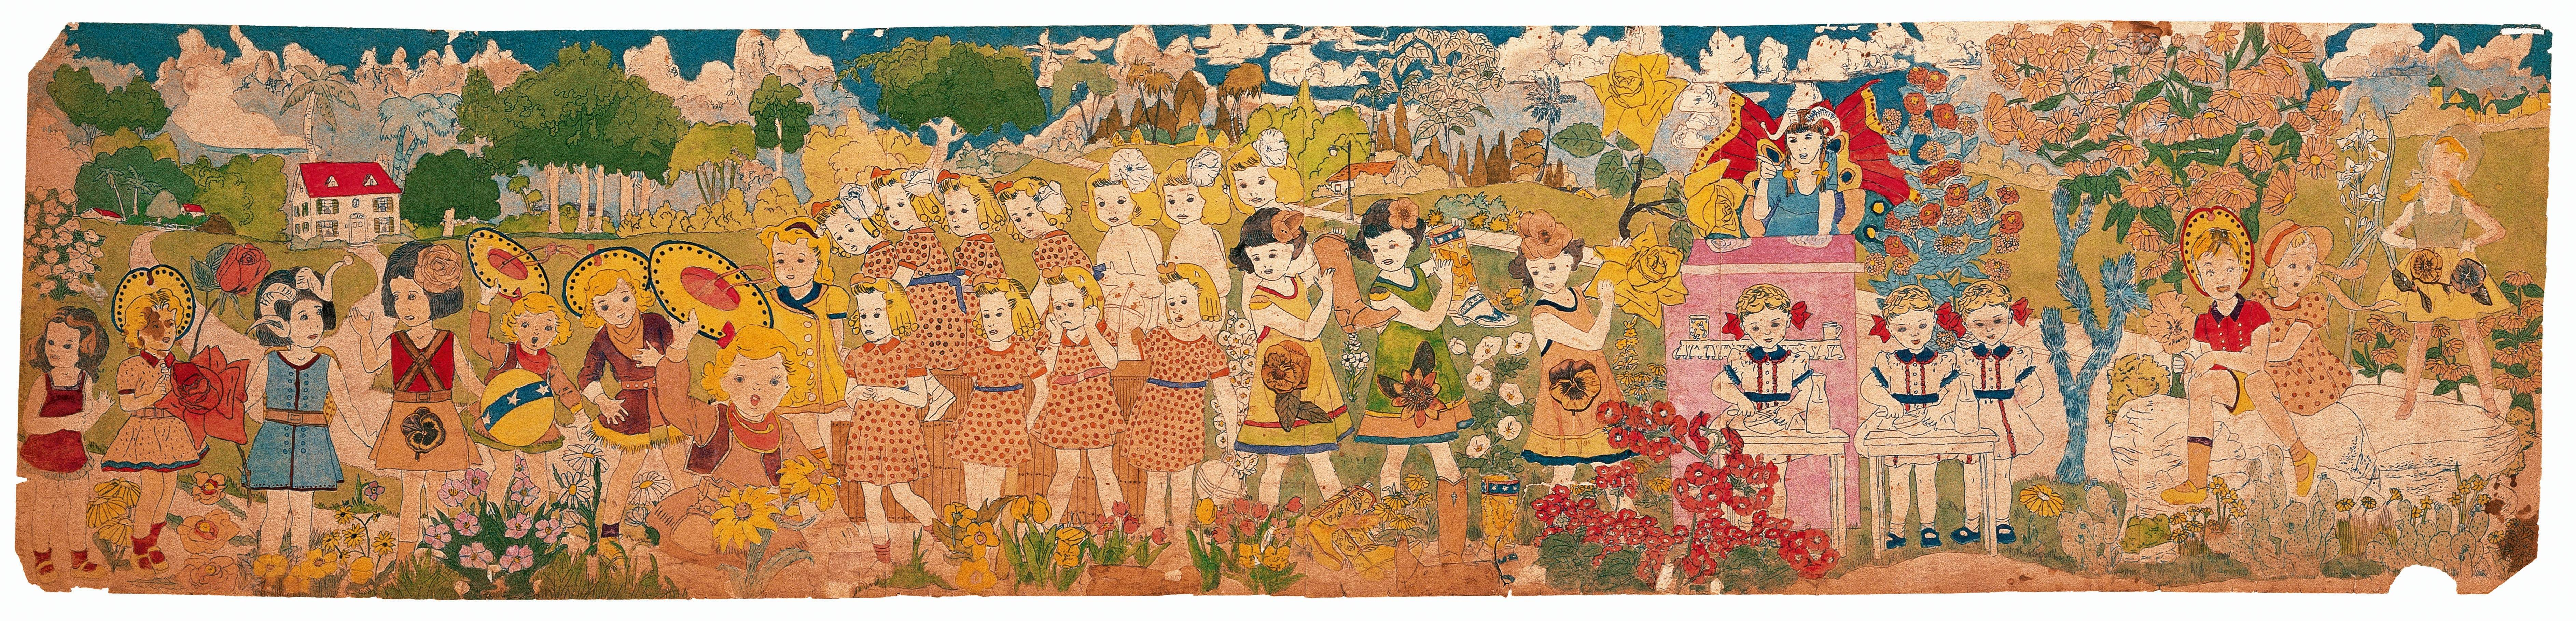 "See Henry Darger's ""Untitled"" when Chicago's Intuit: The Center for Intuitive and Outsider Art opens ""Betwixt and Between: Henry Darger's Vivian Girls"" on Wednesday, April 12."